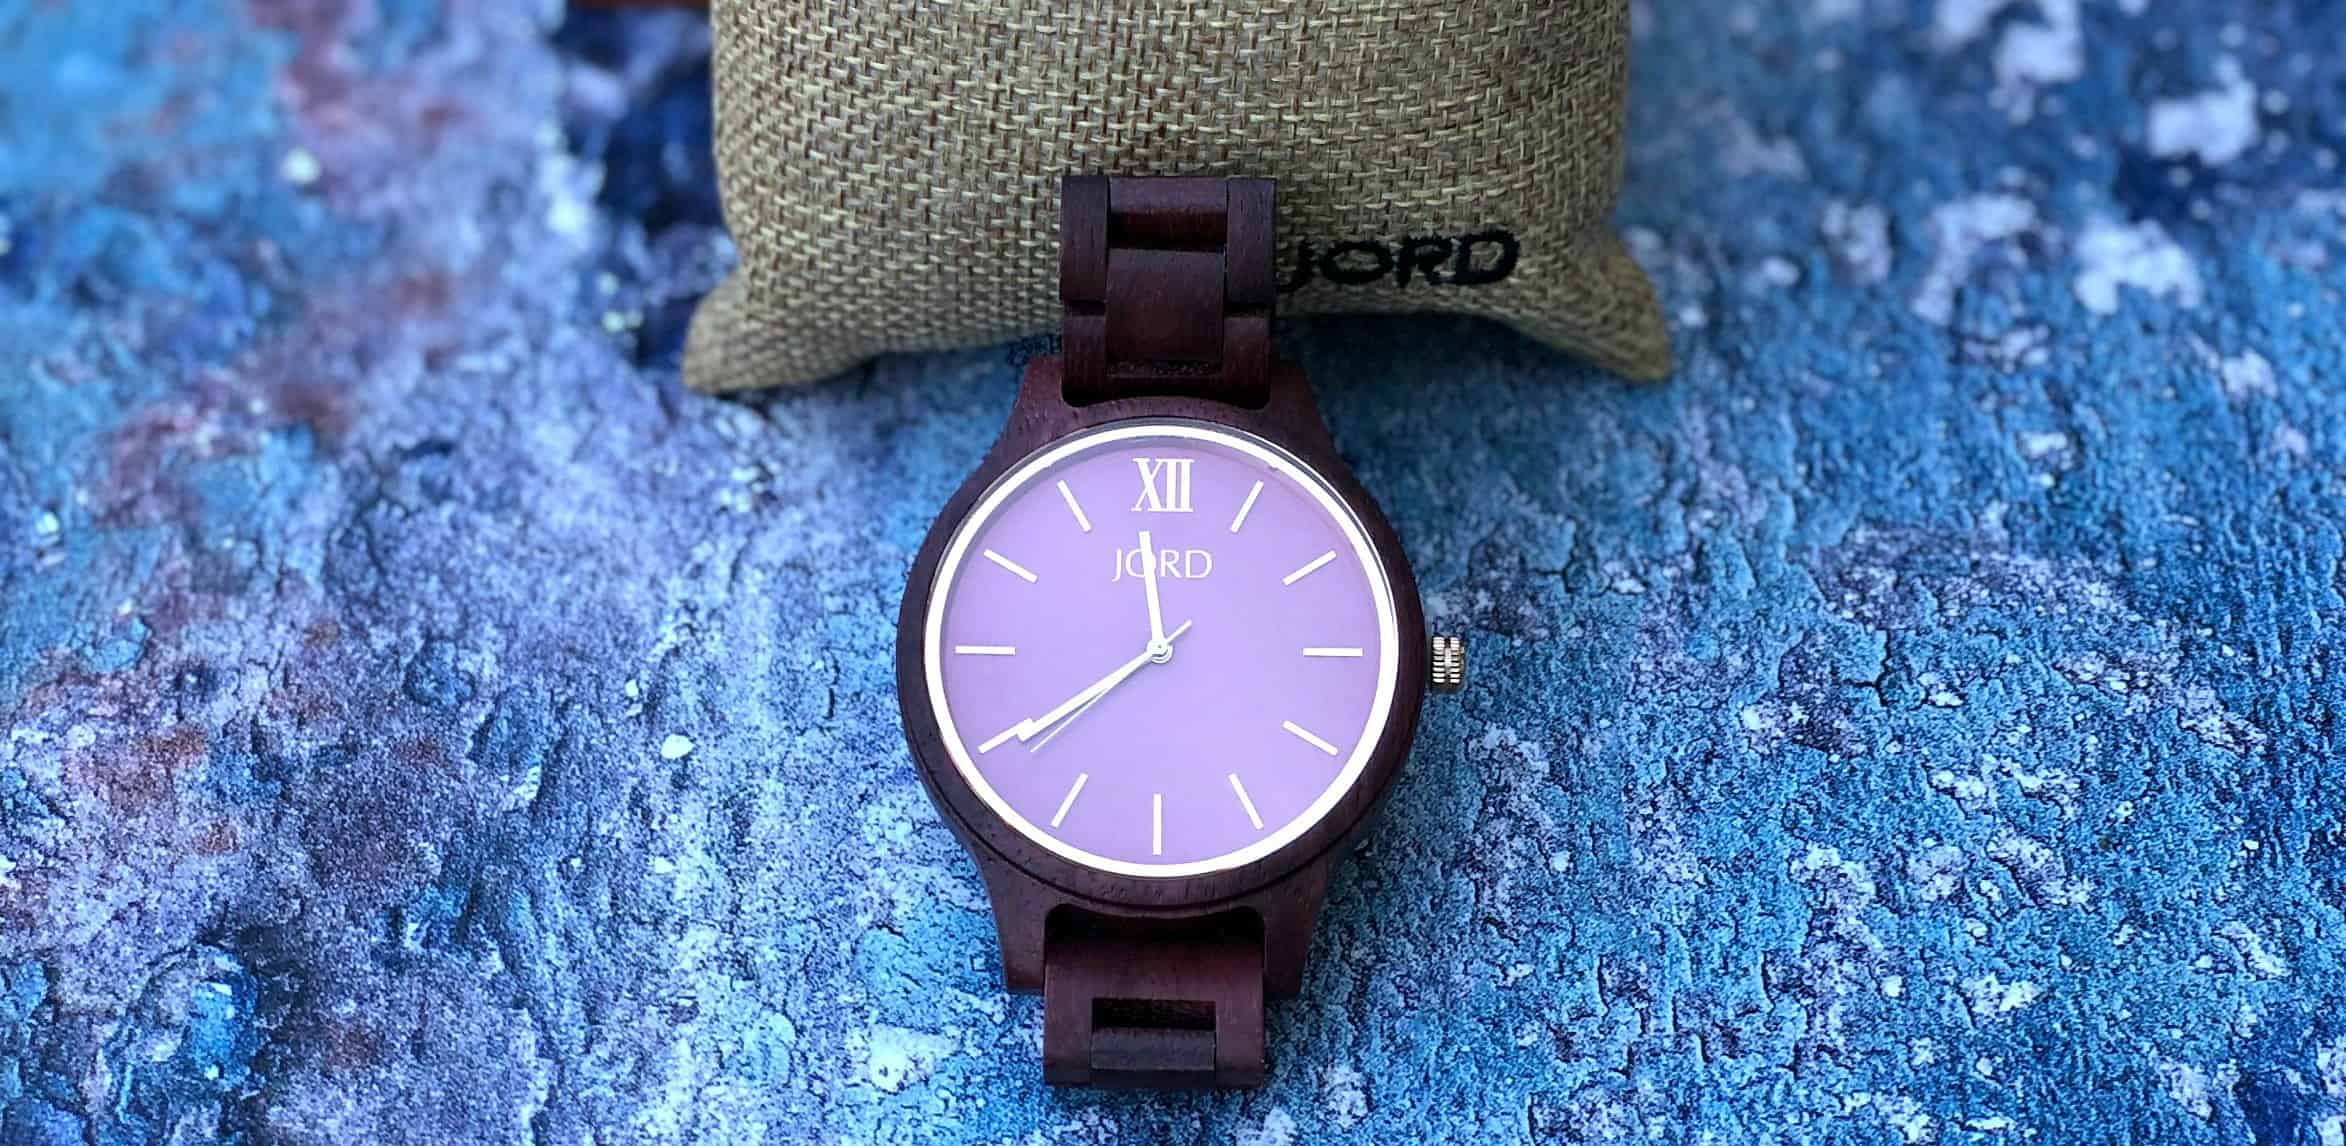 close up of jord watch